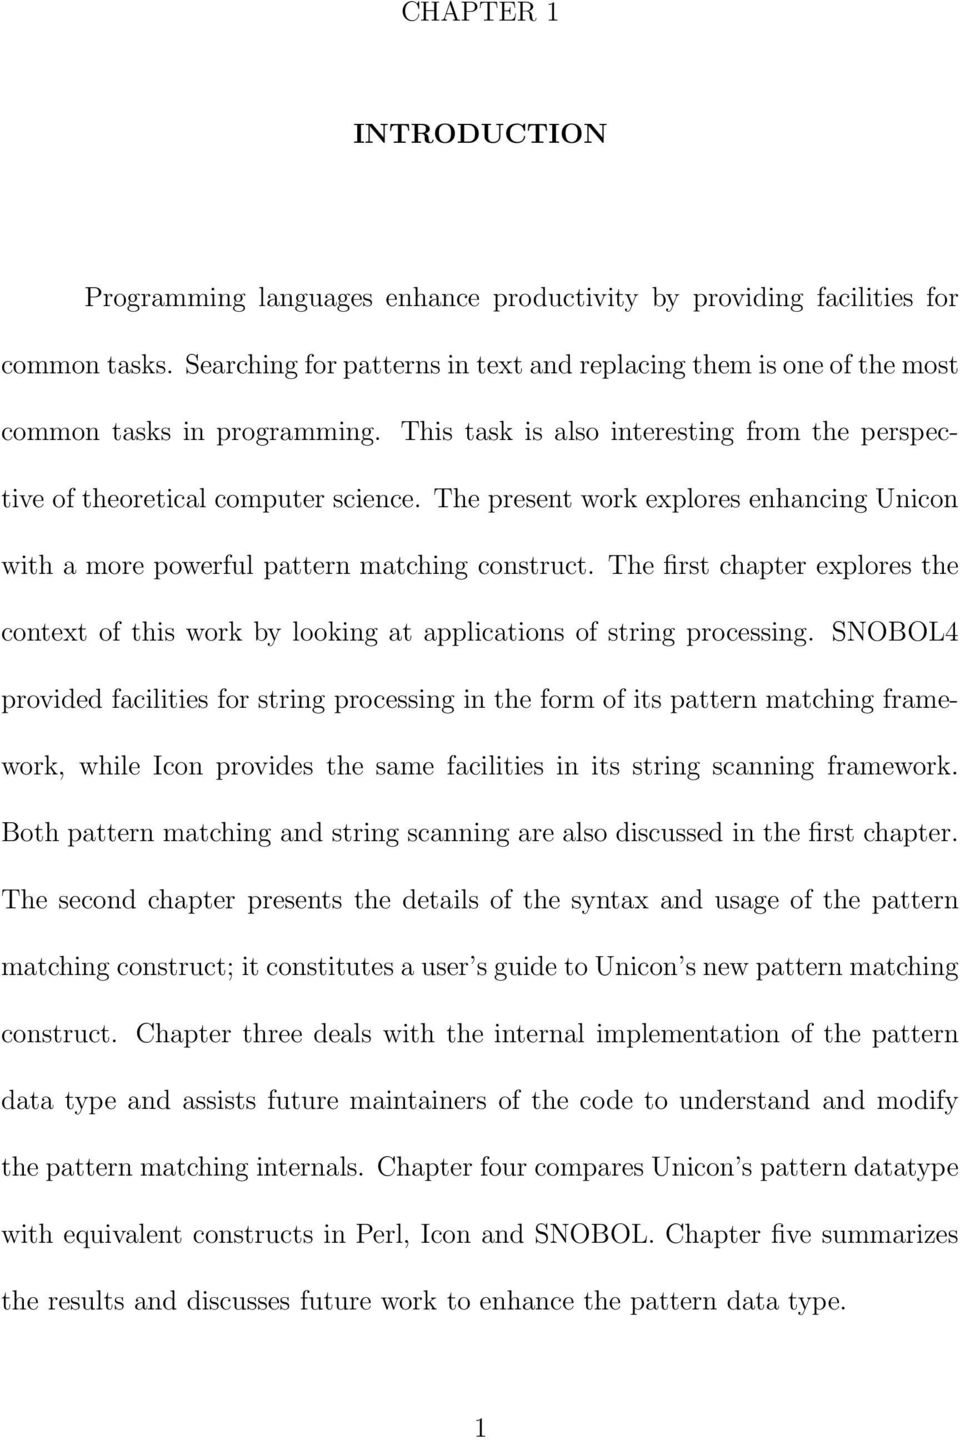 The present work explores enhancing Unicon with a more powerful pattern matching construct. The first chapter explores the context of this work by looking at applications of string processing.